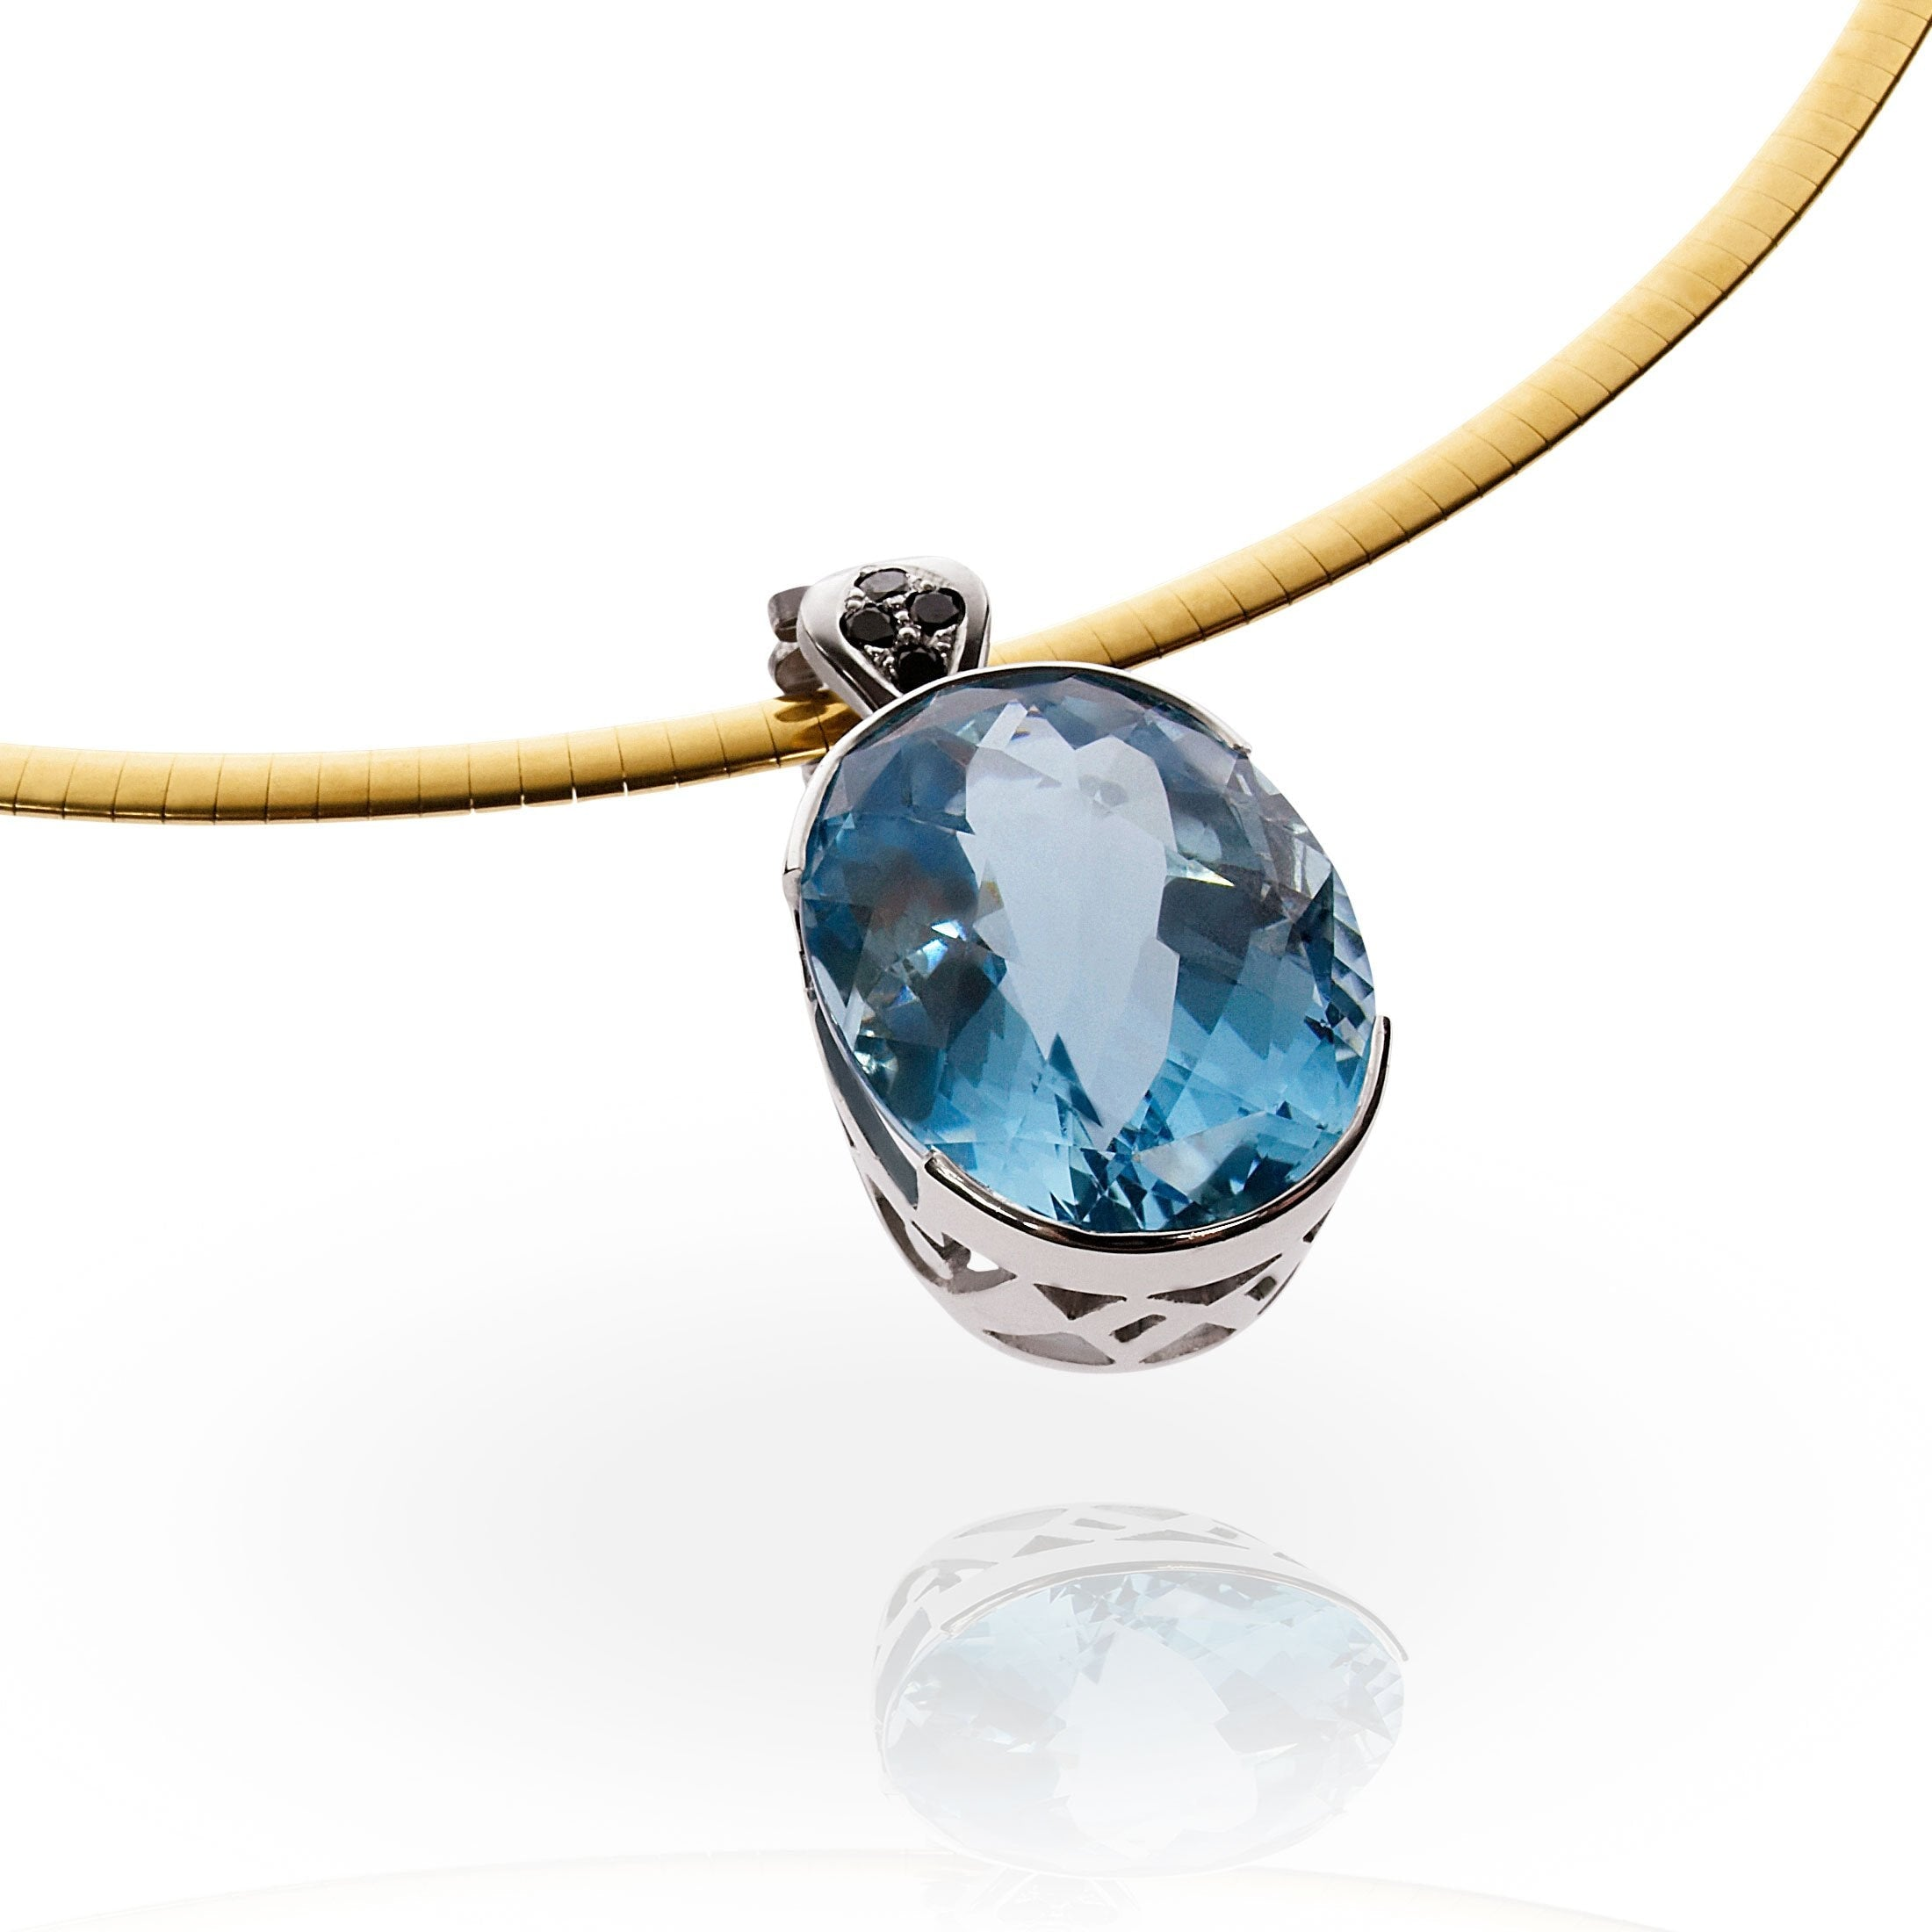 Smales 18ct White Gold Aquamarine Pendant Perth